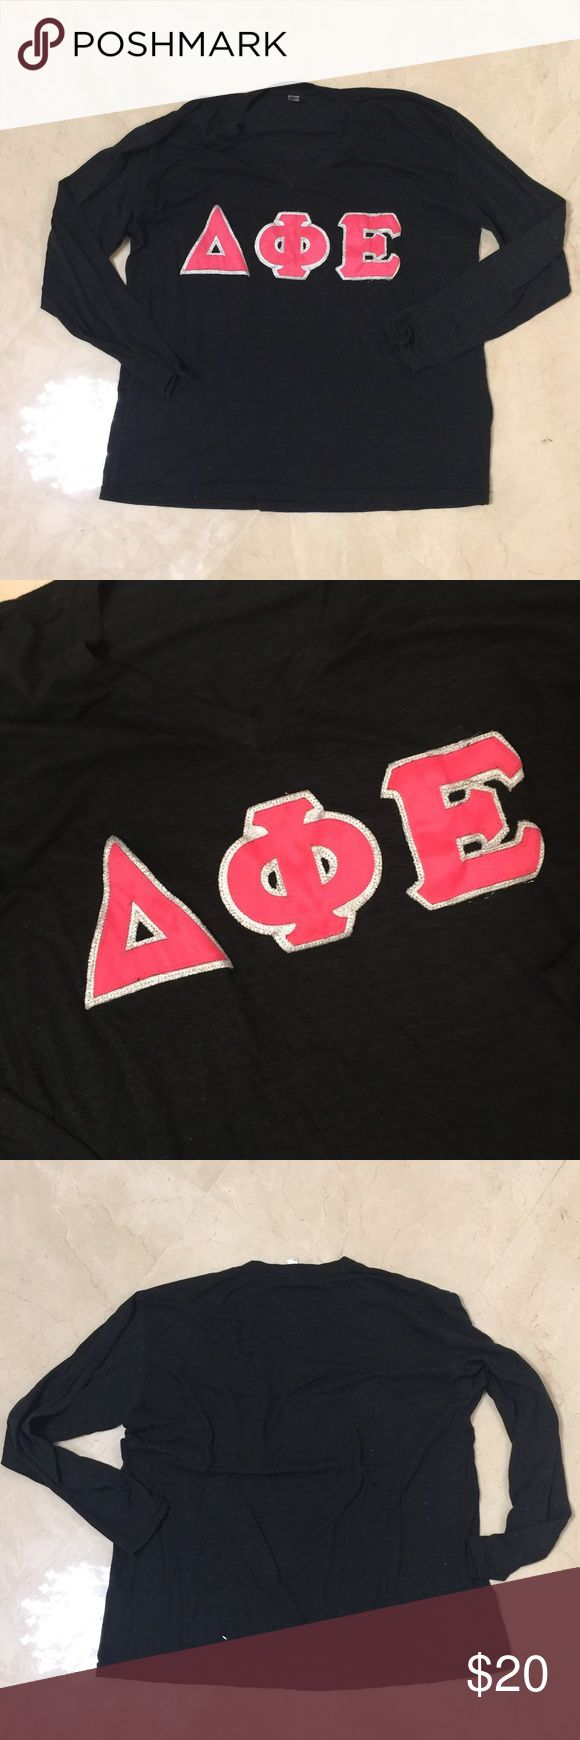 Delta Phi Epsilon Lettered LS TOP American Apparel Gorgeous! Size XL American Apparel Tops Tees - Long Sleeve